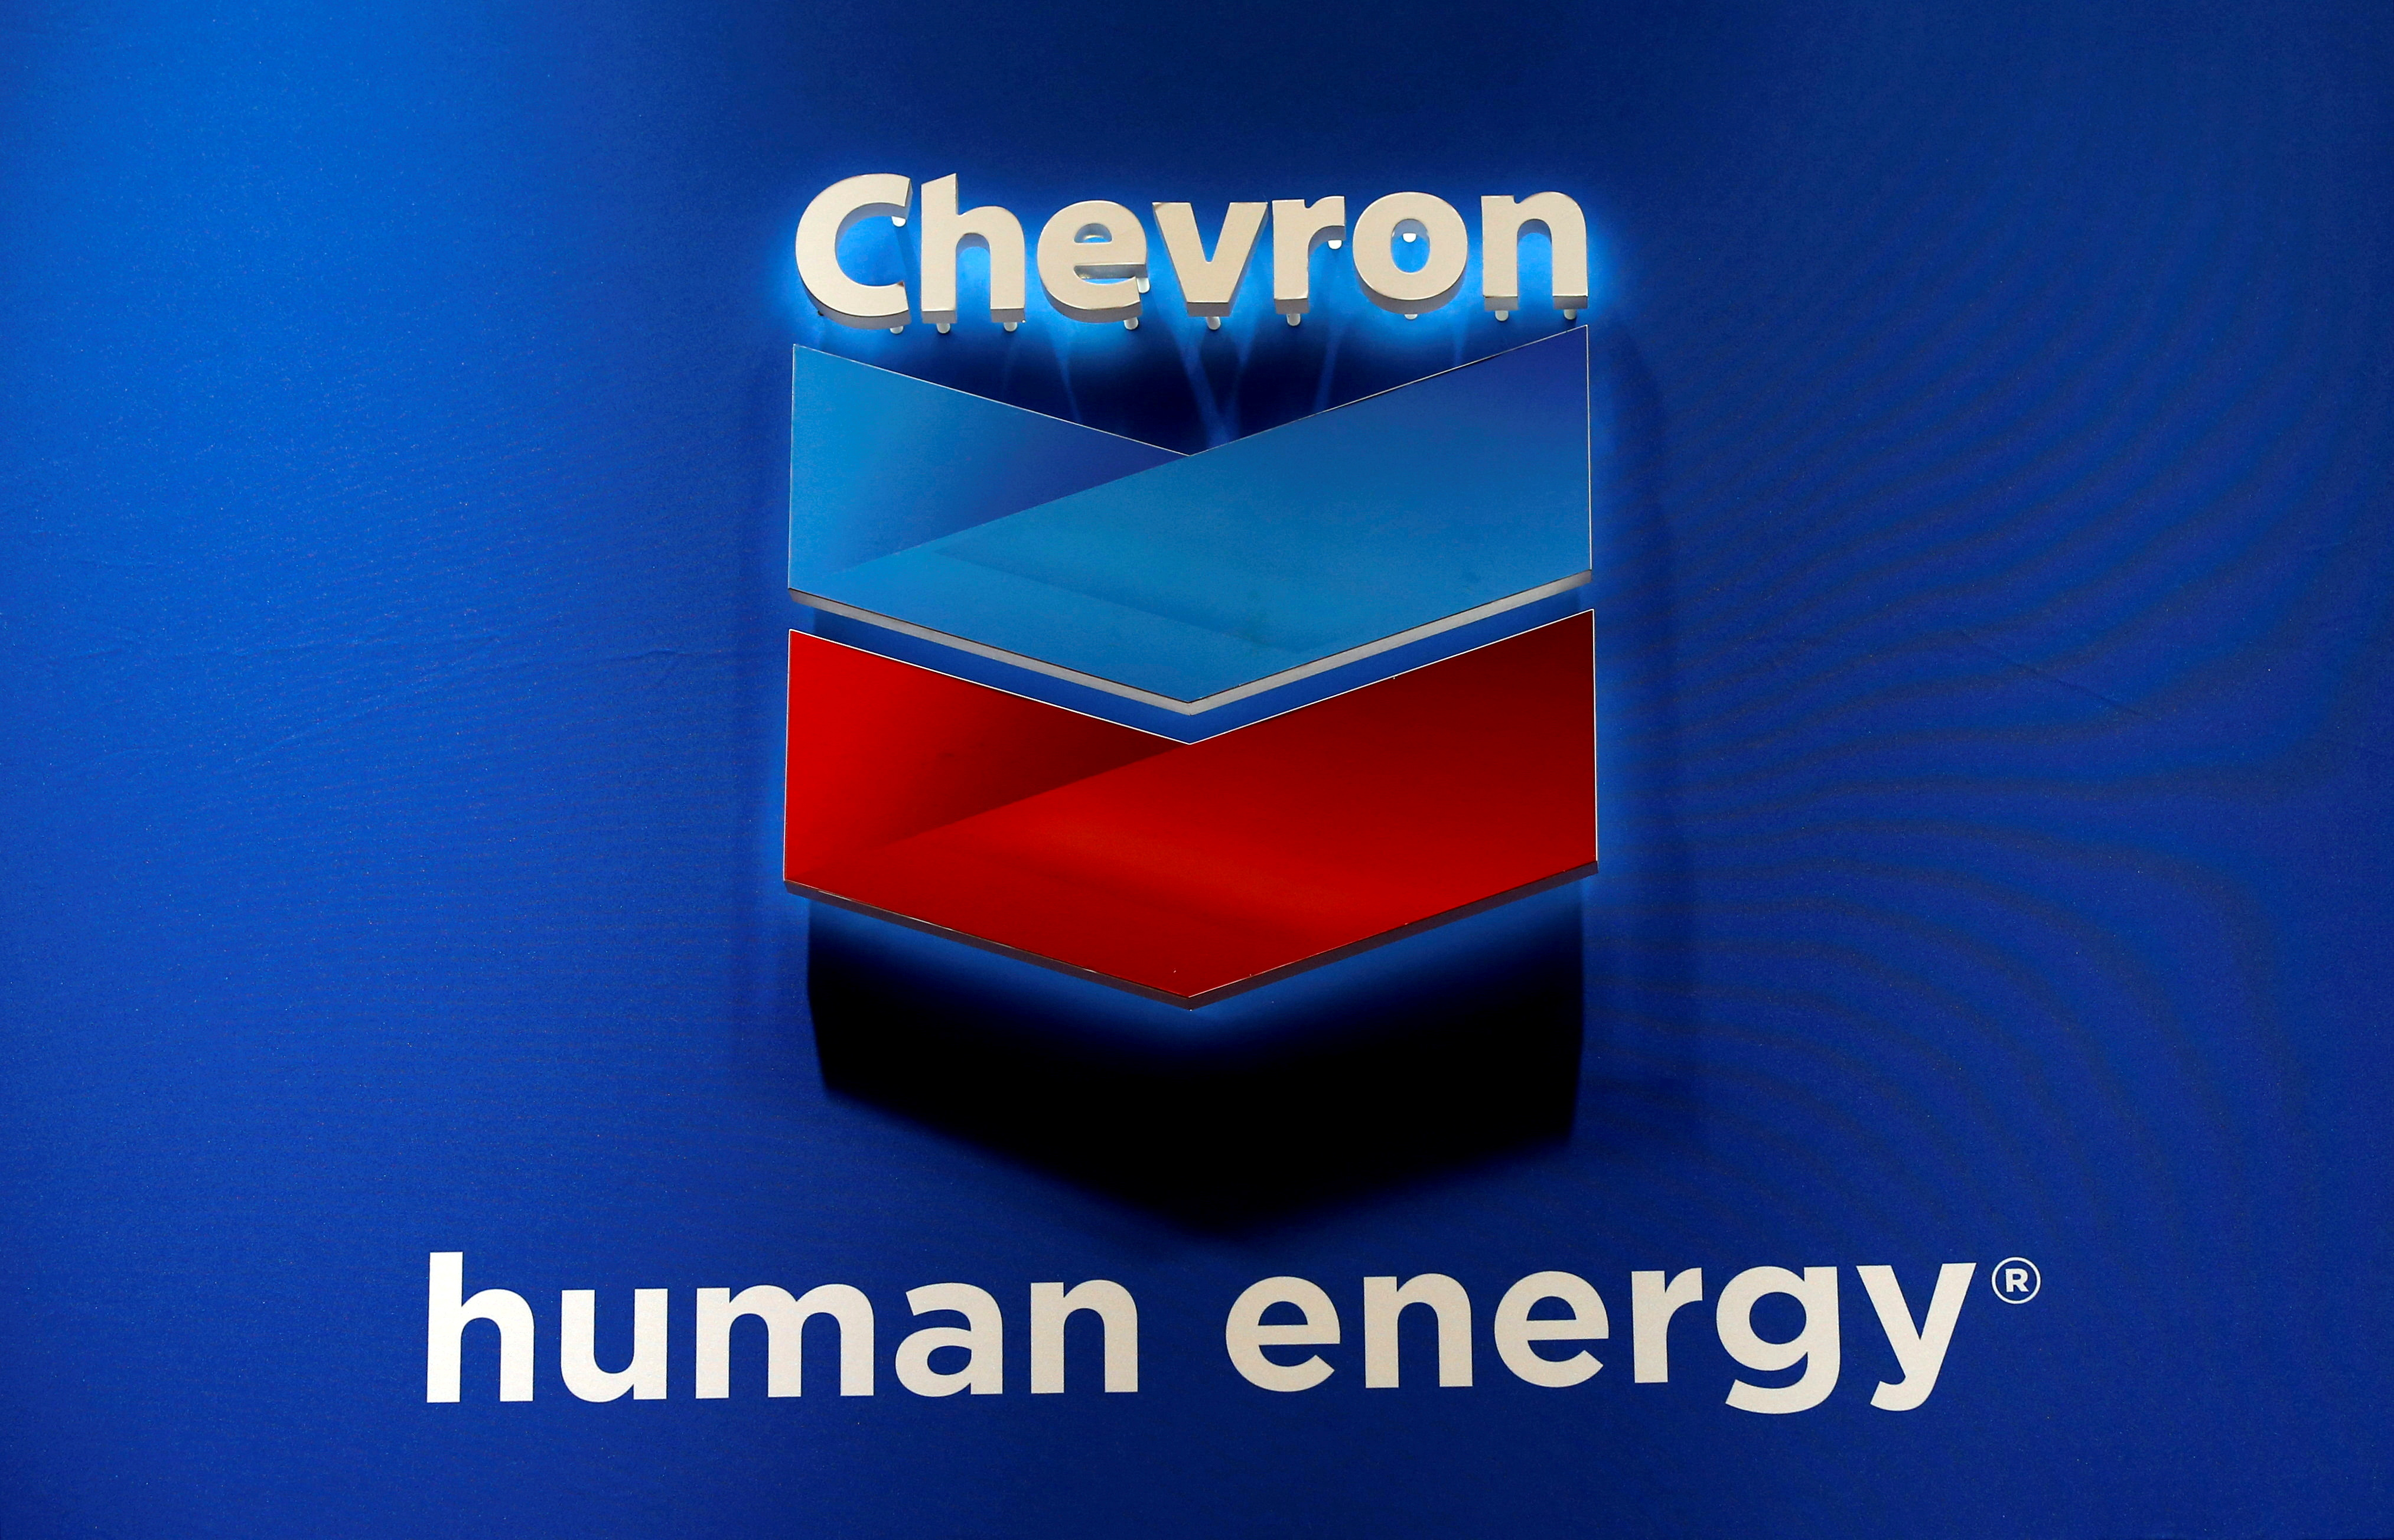 The logo of Chevron Corp is seen in its booth at Gastech, the world's biggest expo for the gas industry, in Chiba, Japan April 4, 2017.    REUTERS/Toru Hanai/File Photo